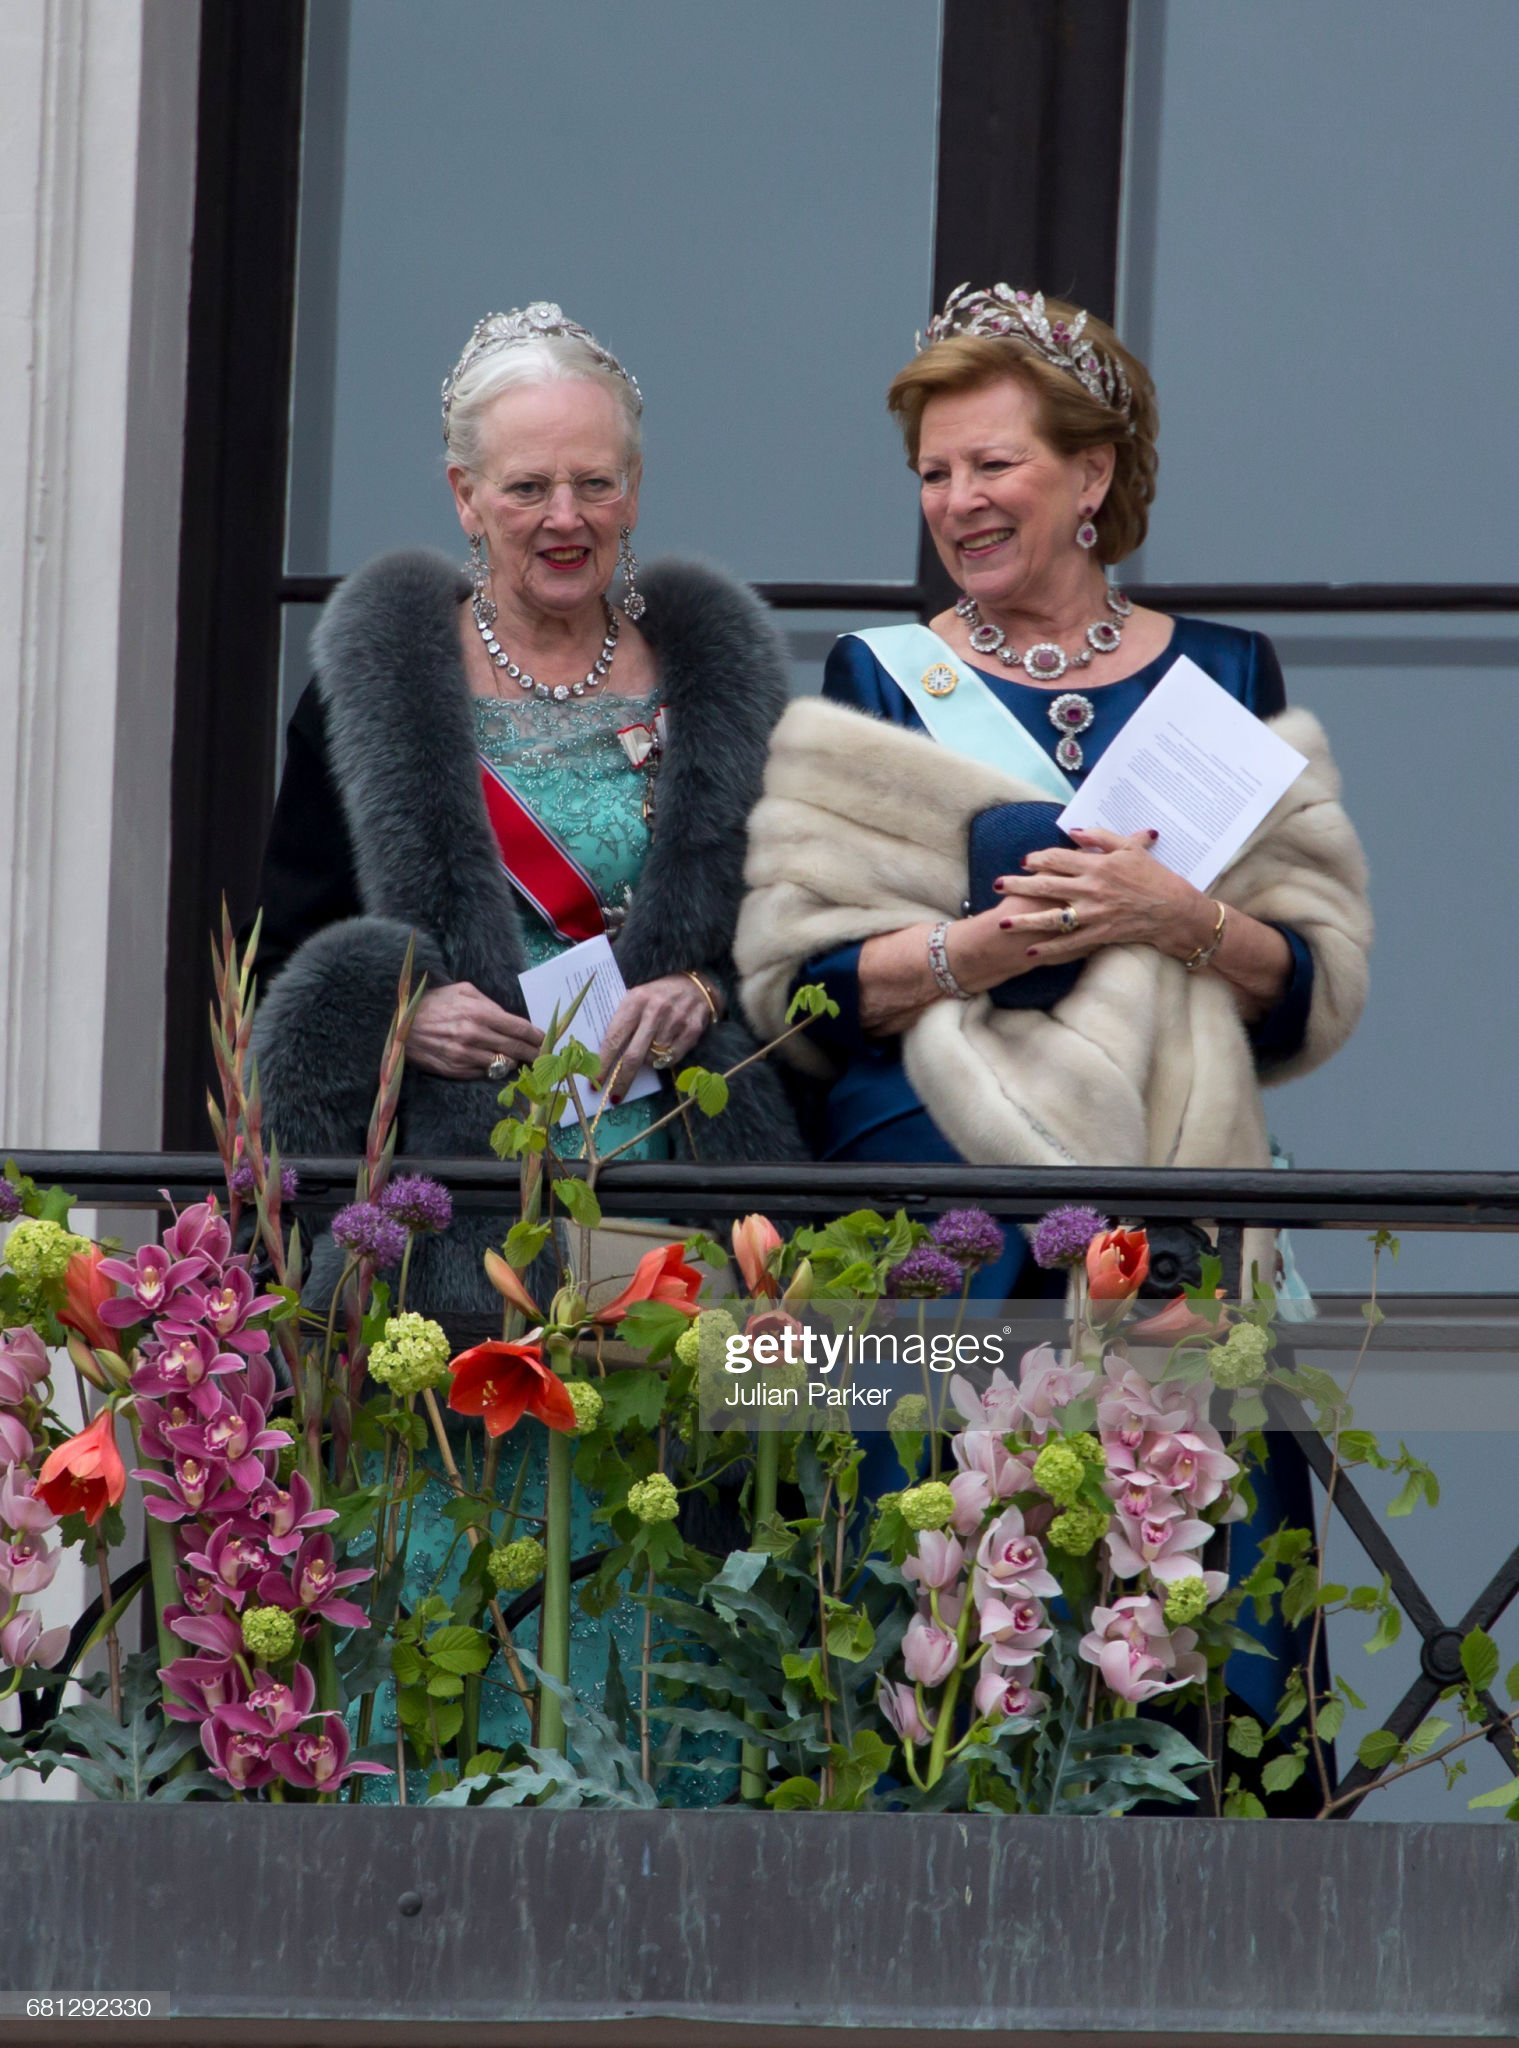 King and Queen Of Norway Celebrate Their 80th Birthdays - Day 1 : News Photo